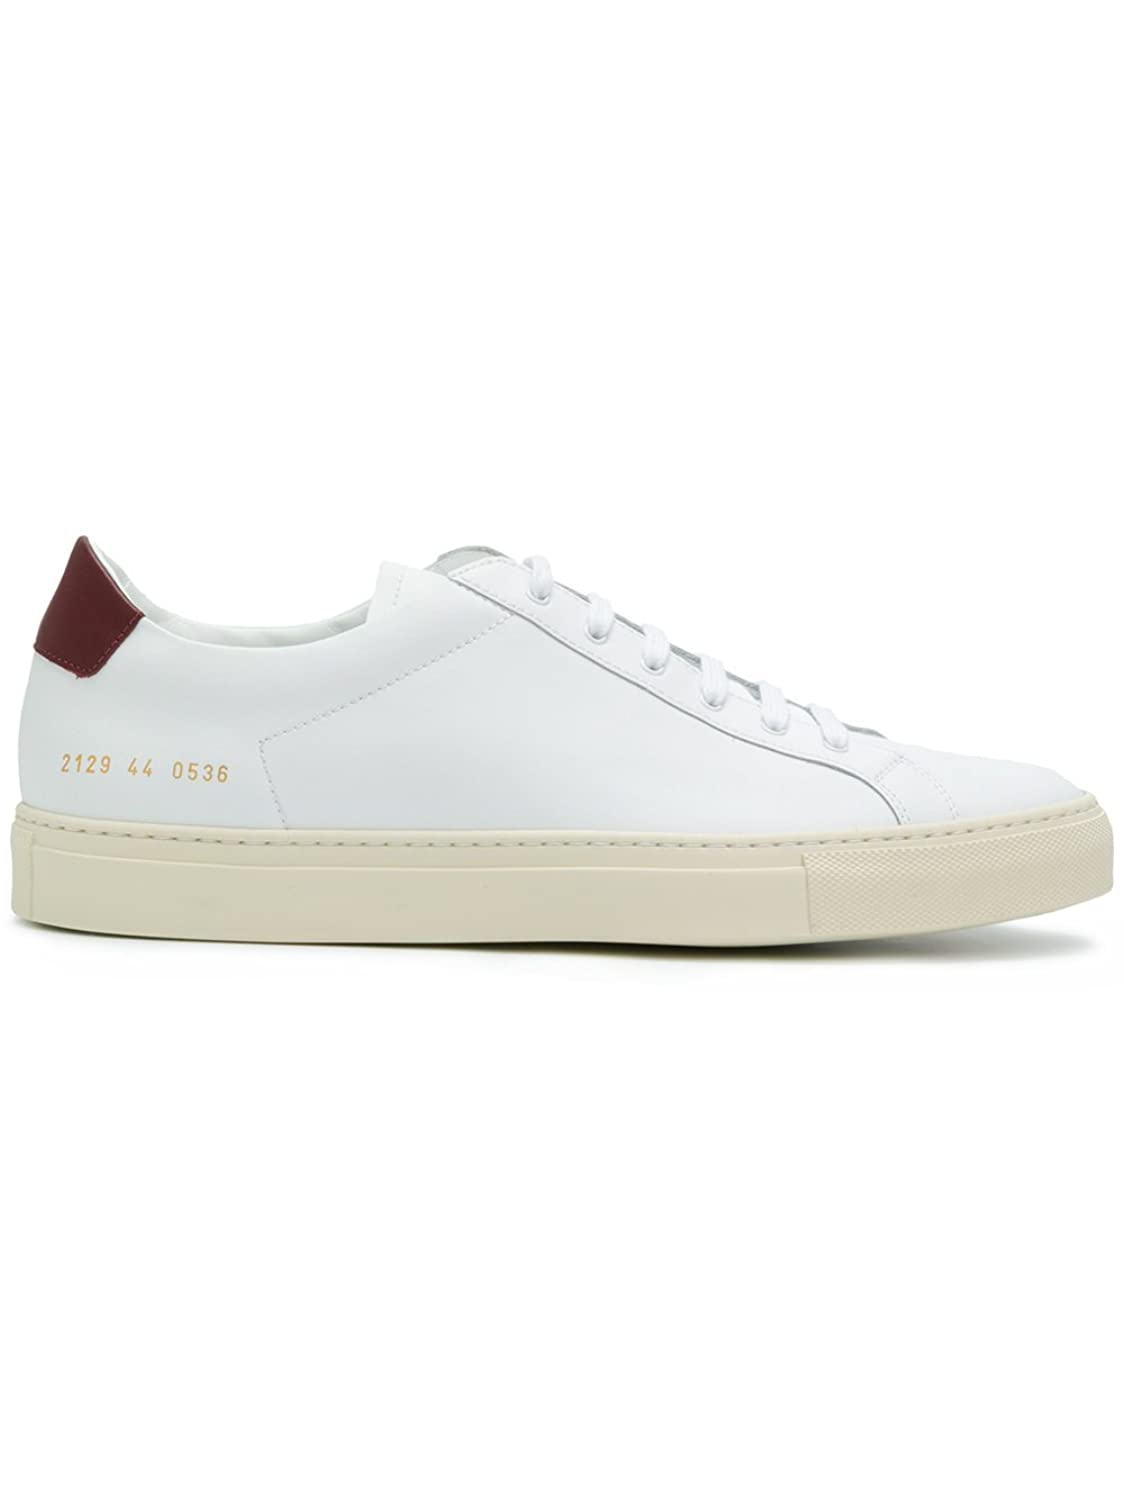 COMMON PROJECTS メンズ B07BR2CBSX